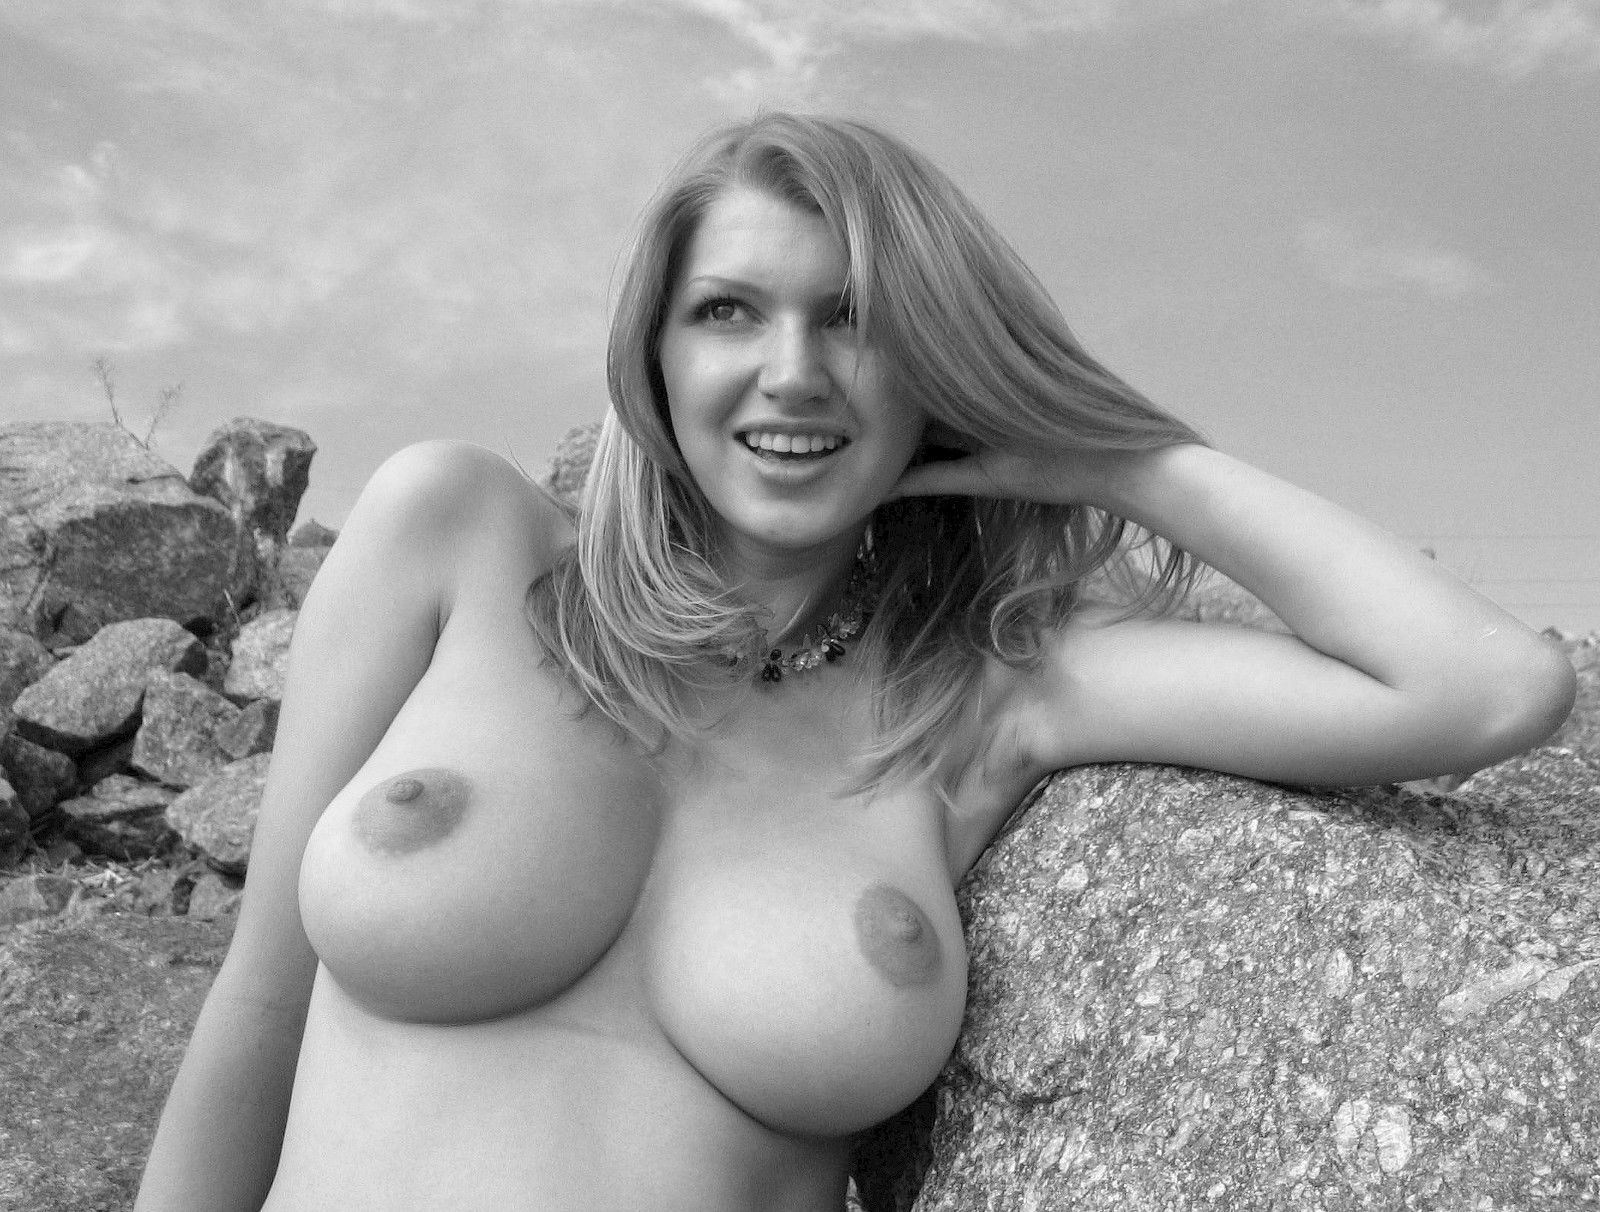 Cute Short Haired Teen With Amazing Big Natural Tits